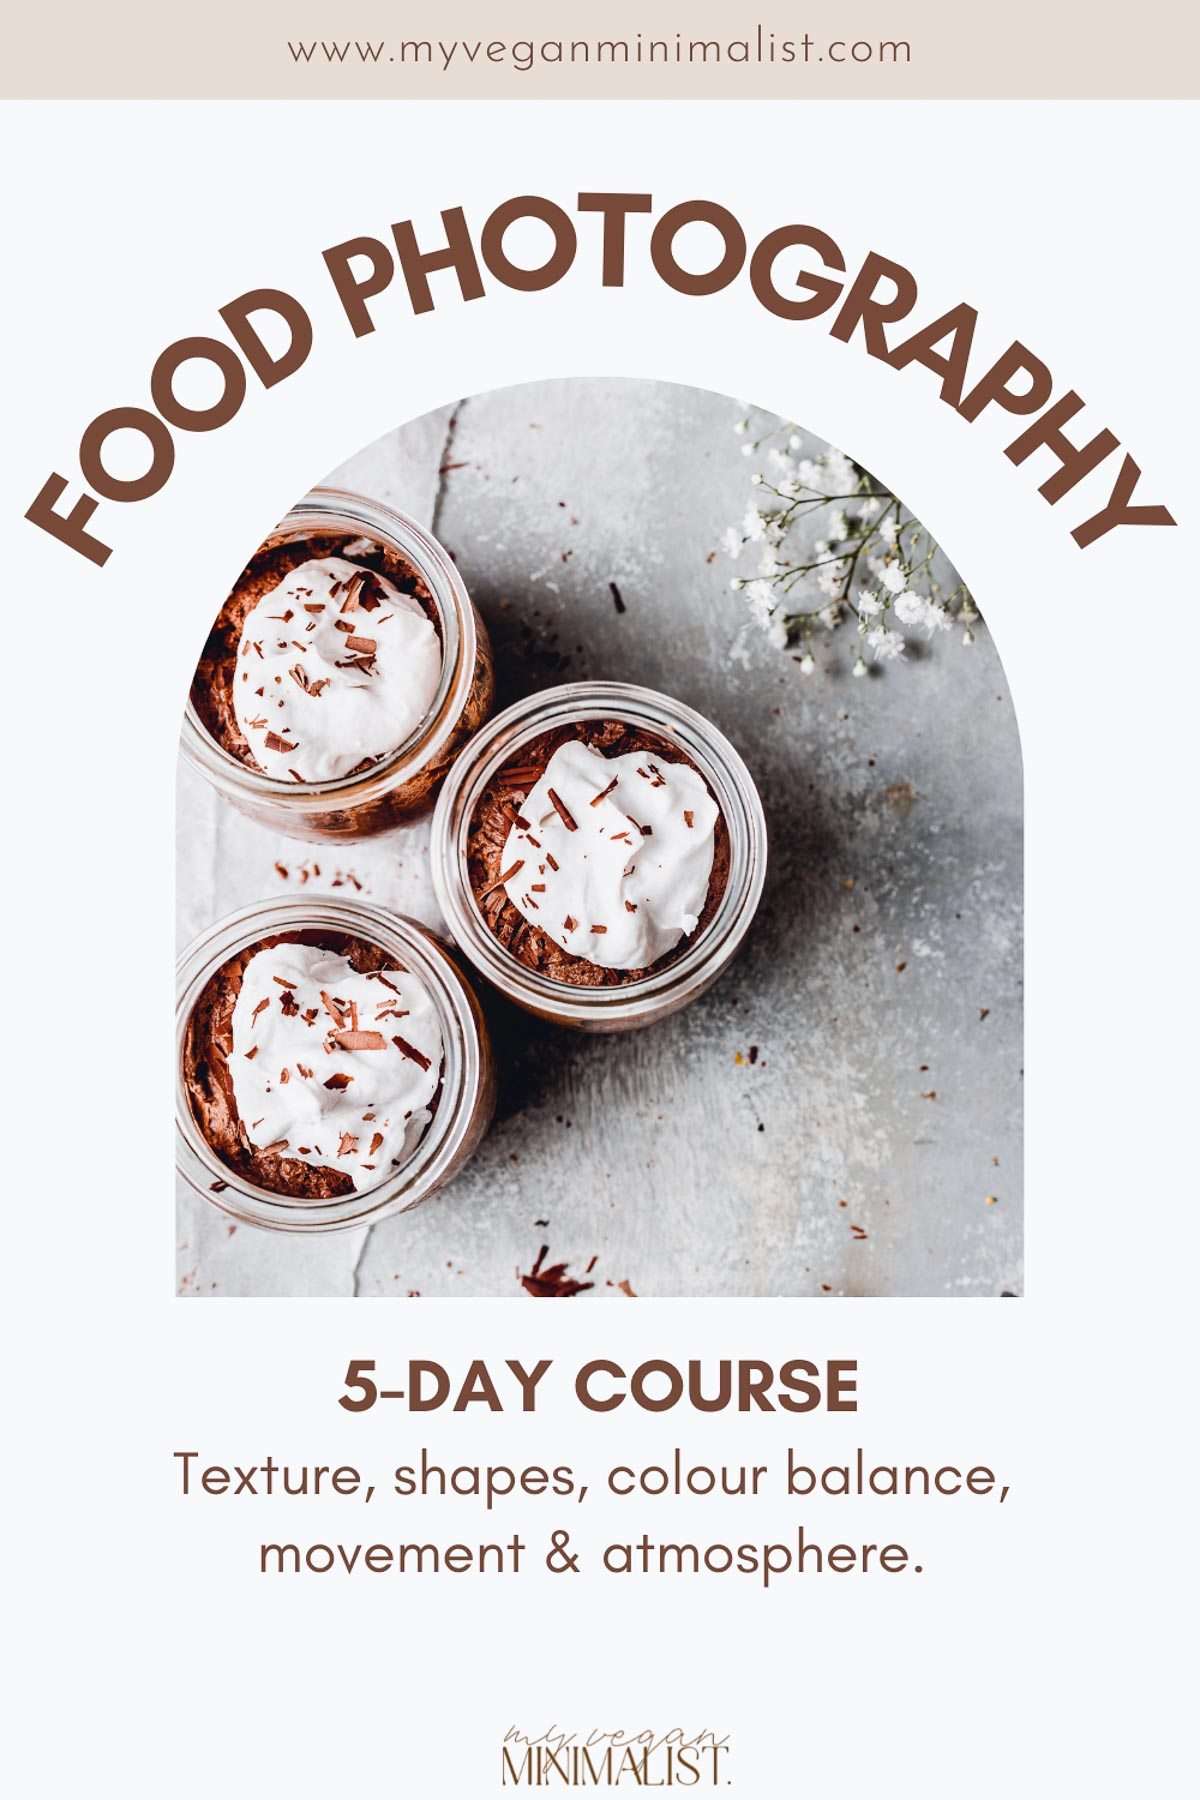 A photo of chocolate mousse with the title 'food photography' written in capitals on top.